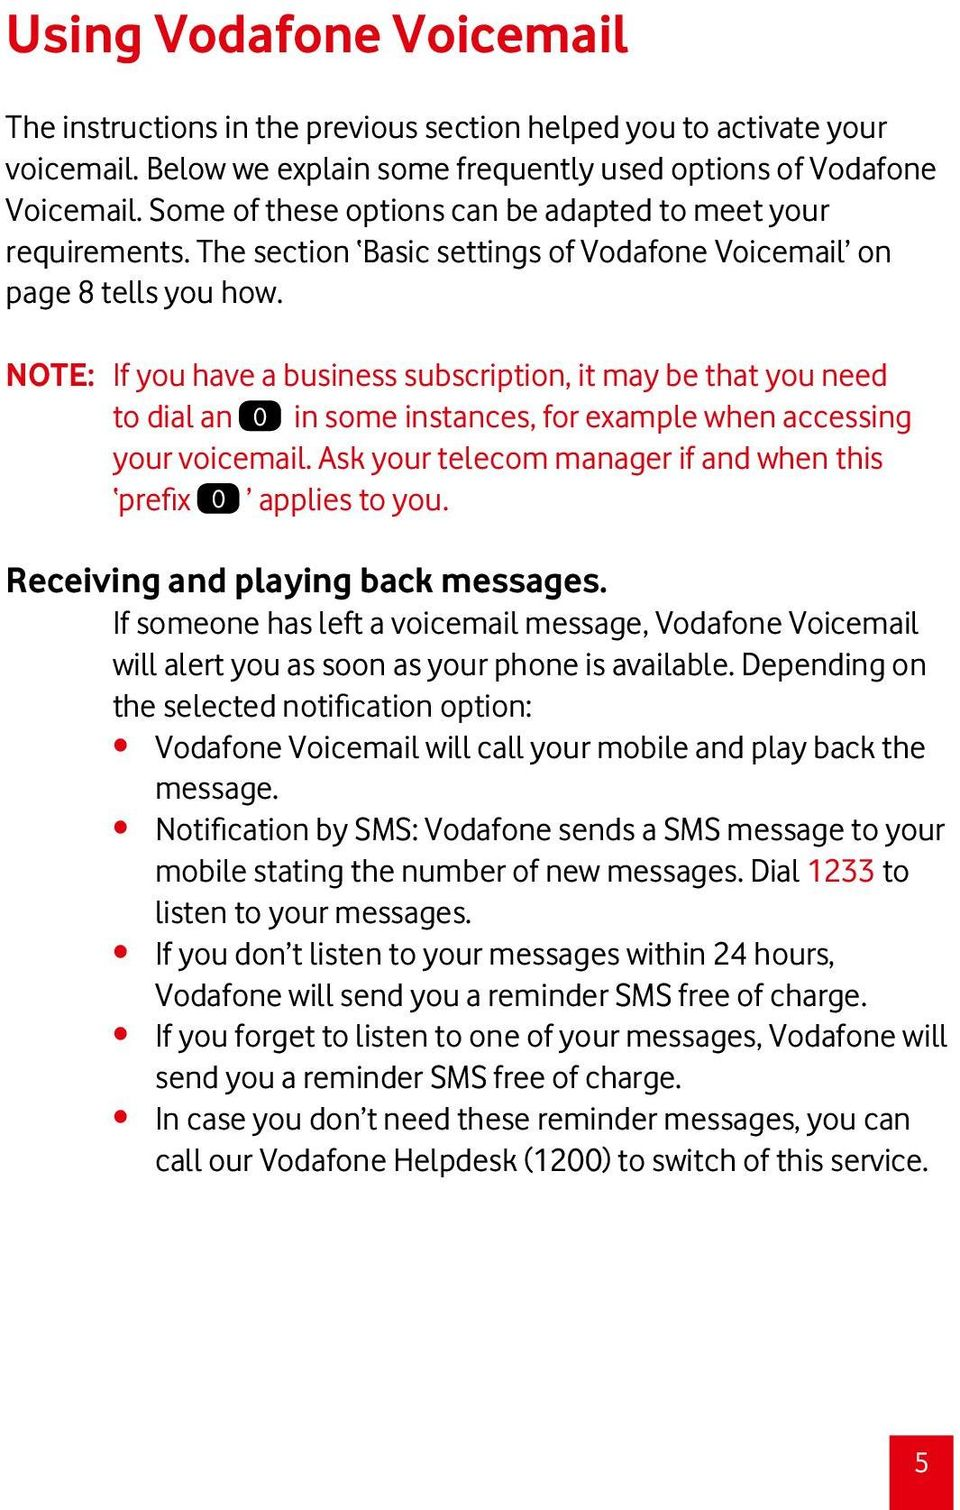 Note: If you have a business subscription, it may be that you need to dial an 0 in some instances, for example when accessing your voicemail.